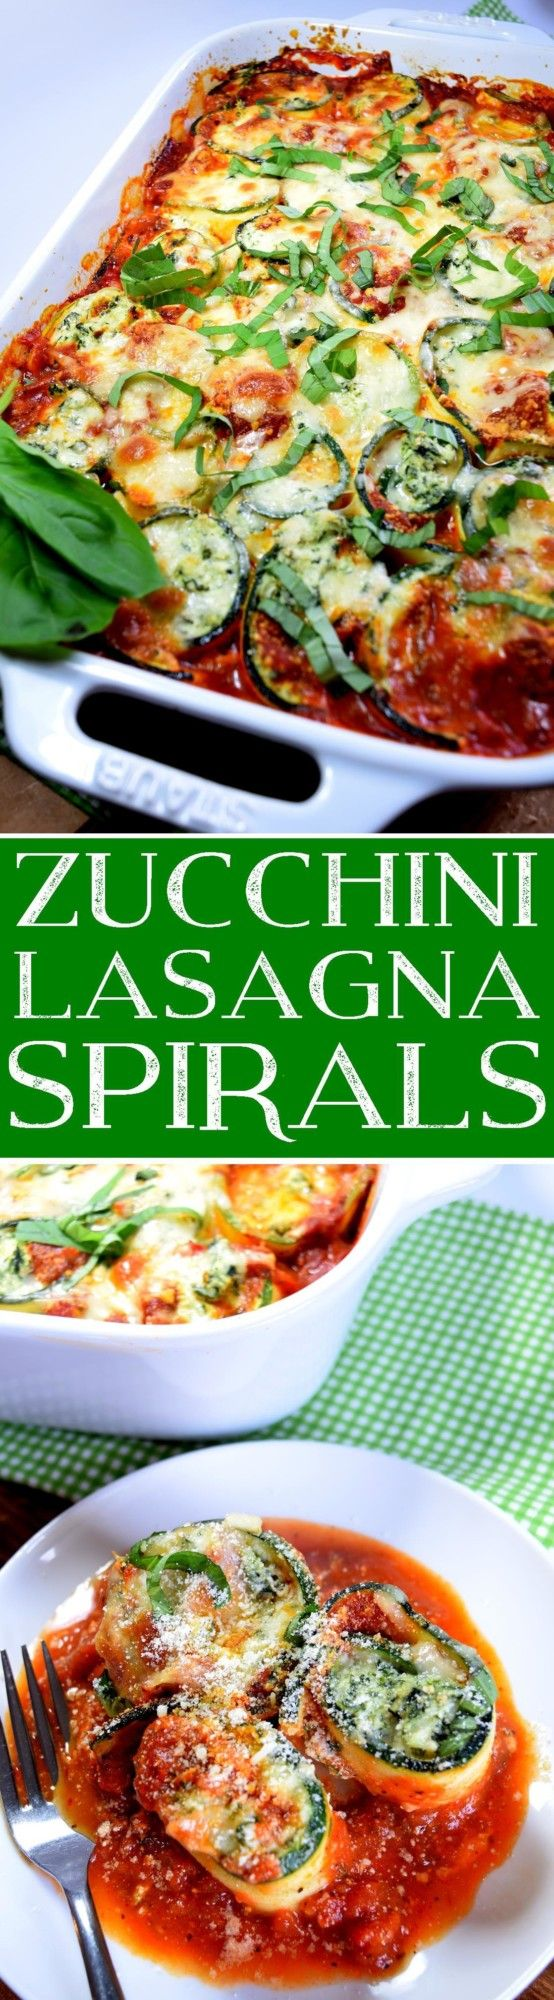 ... Lasagna on Pinterest | Vegan Zucchini Lasagna, Lasagna and Vegan Food